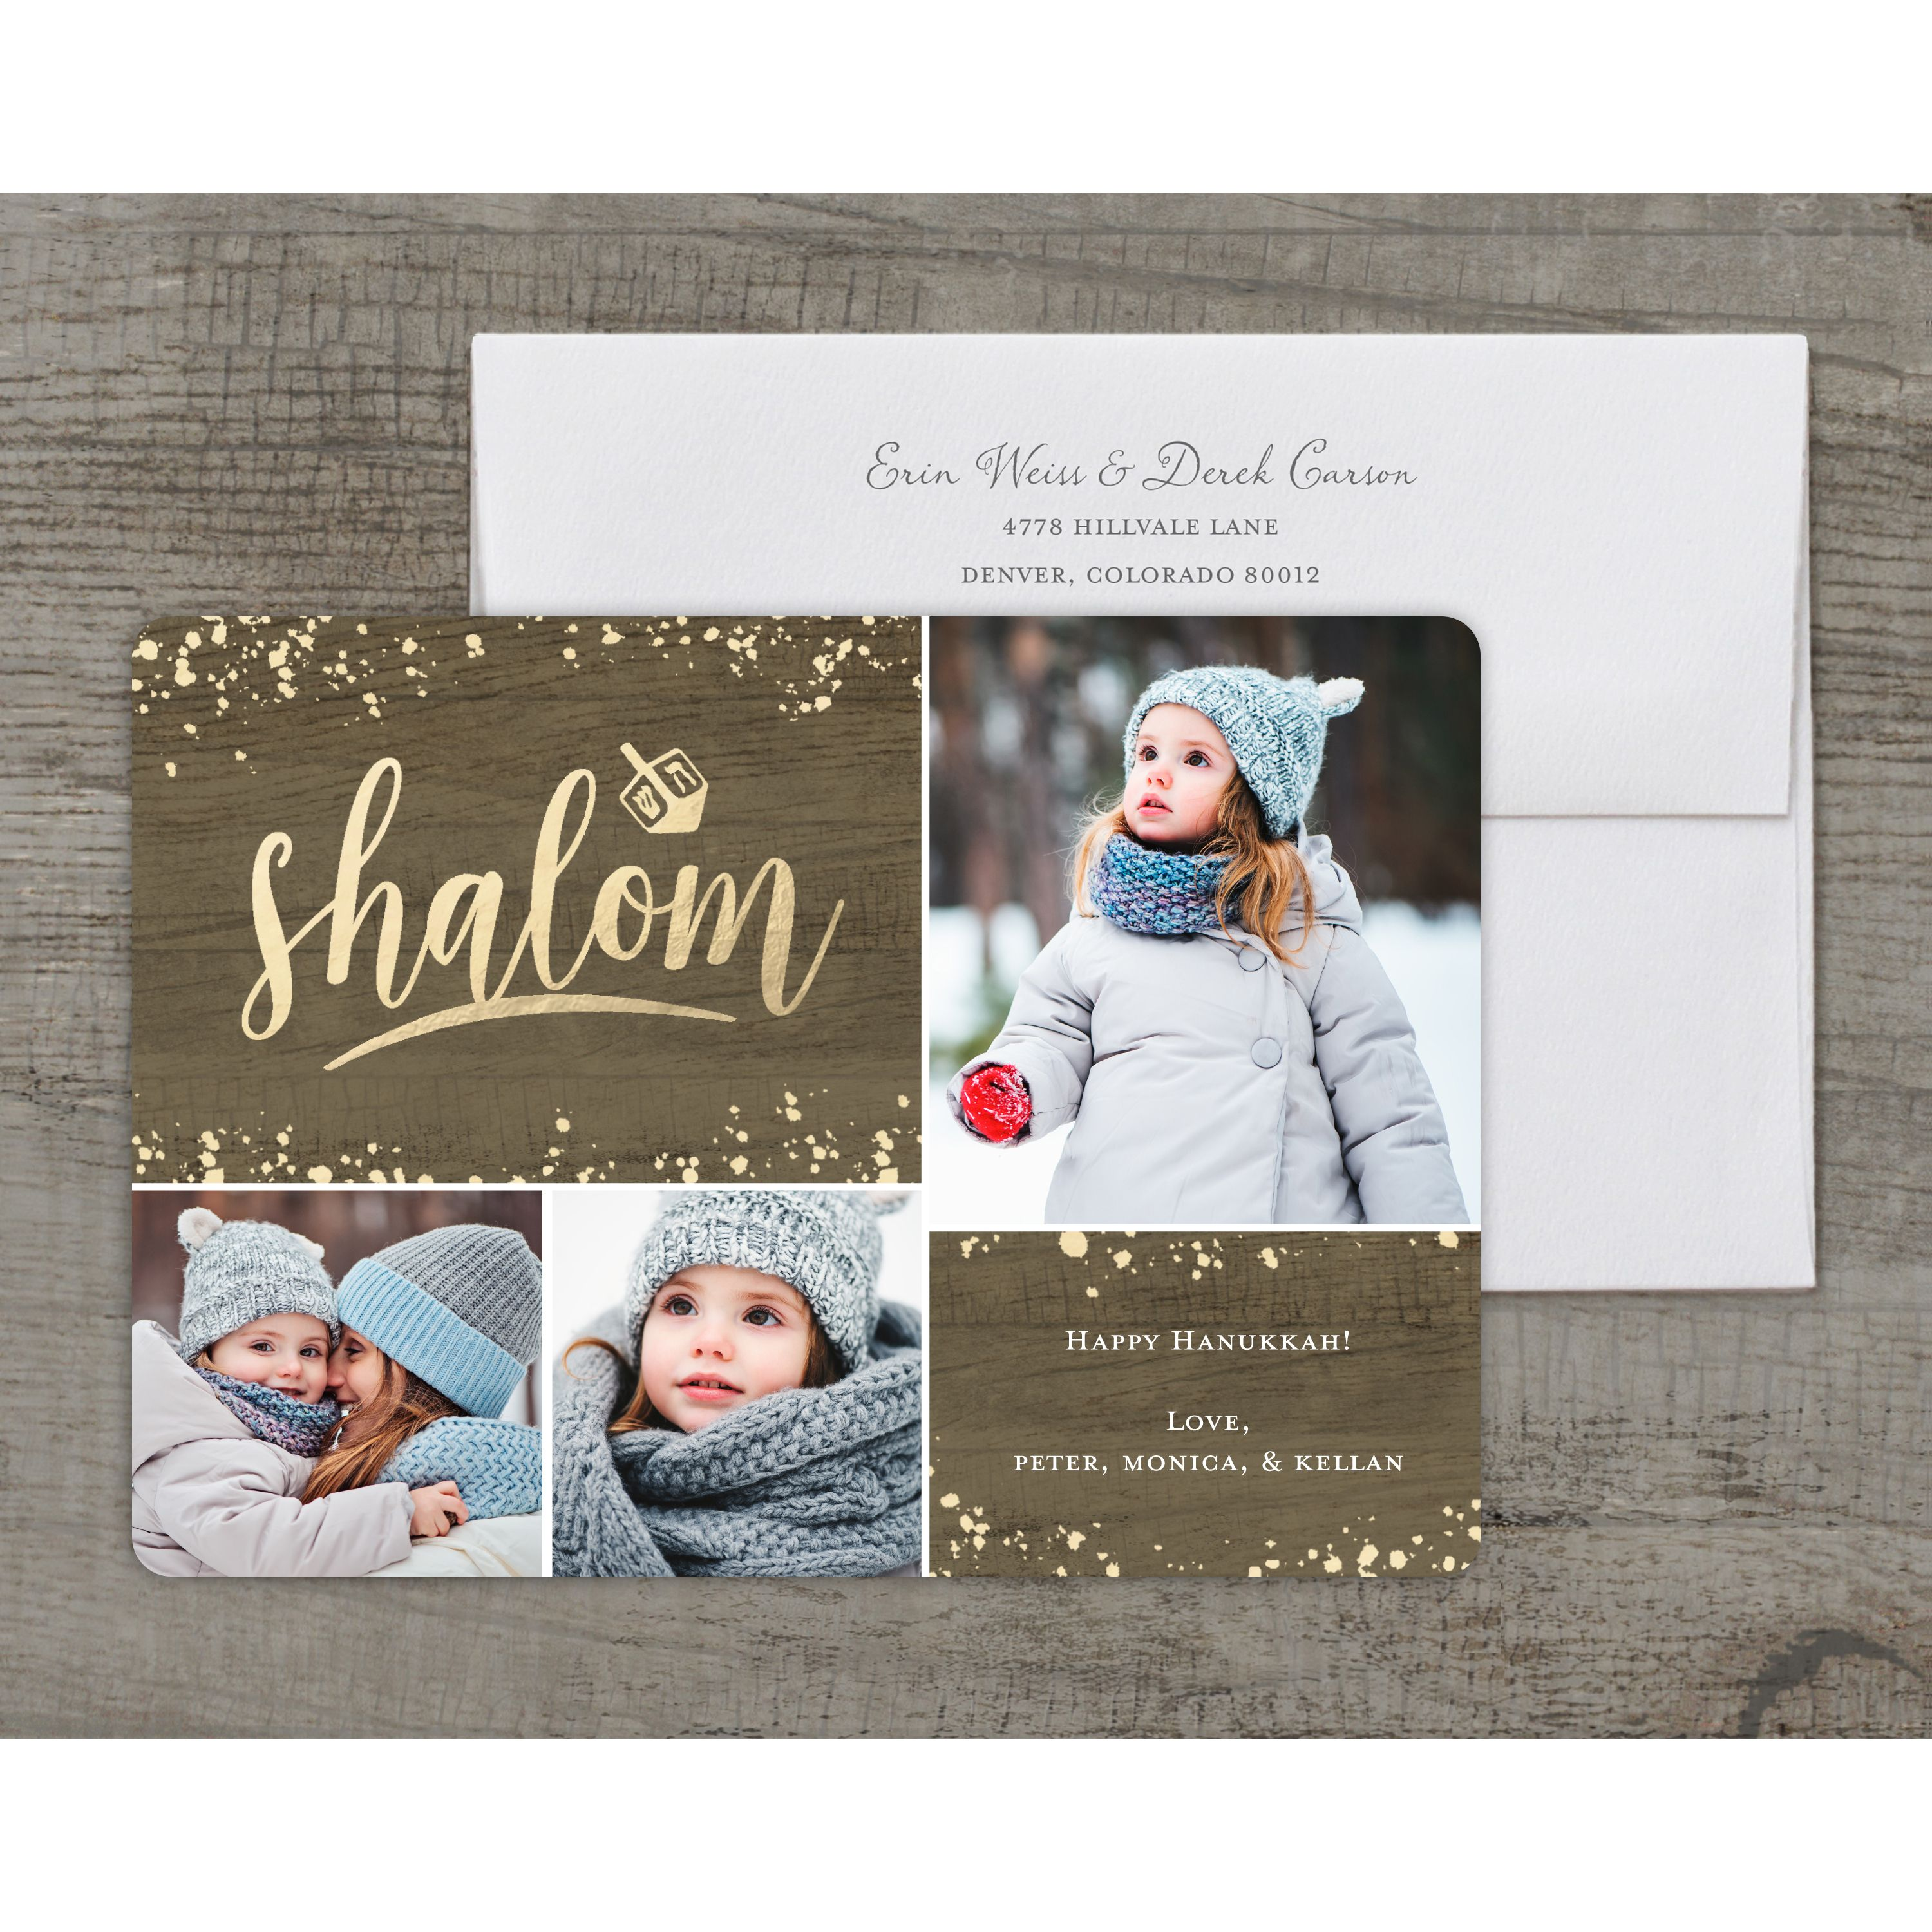 Opulent Shalom - Deluxe 5x7 Personalized Holiday Hanukkah Card